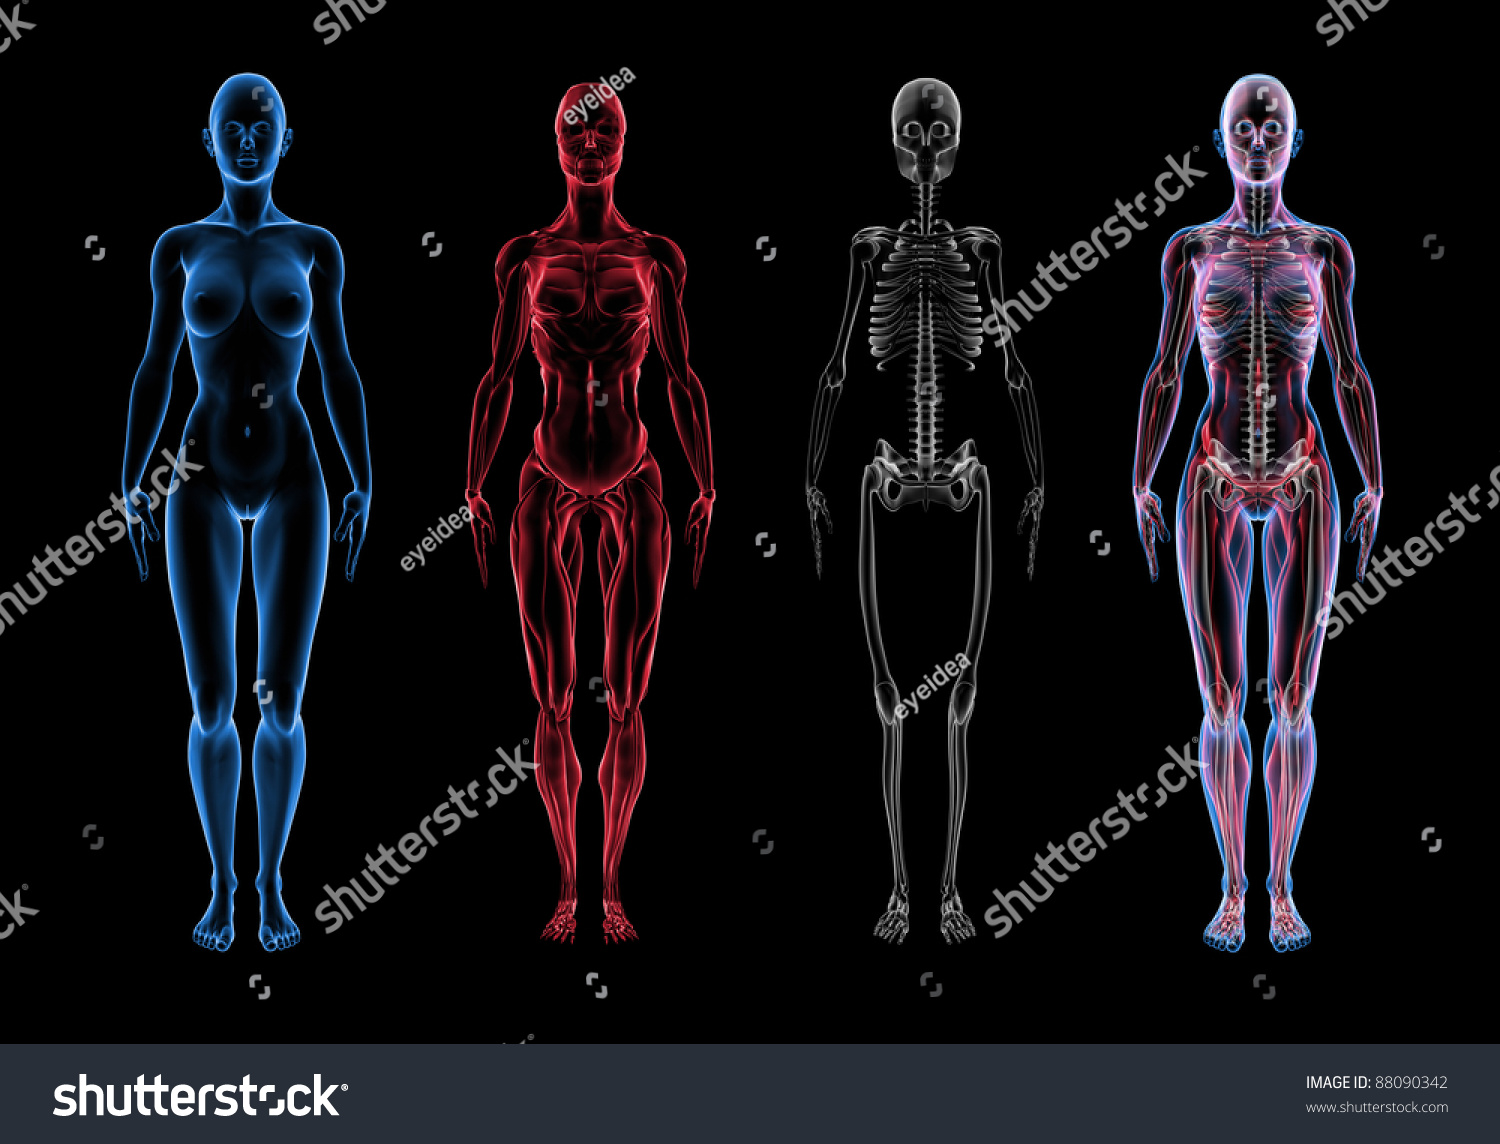 Pictures of female anatomy